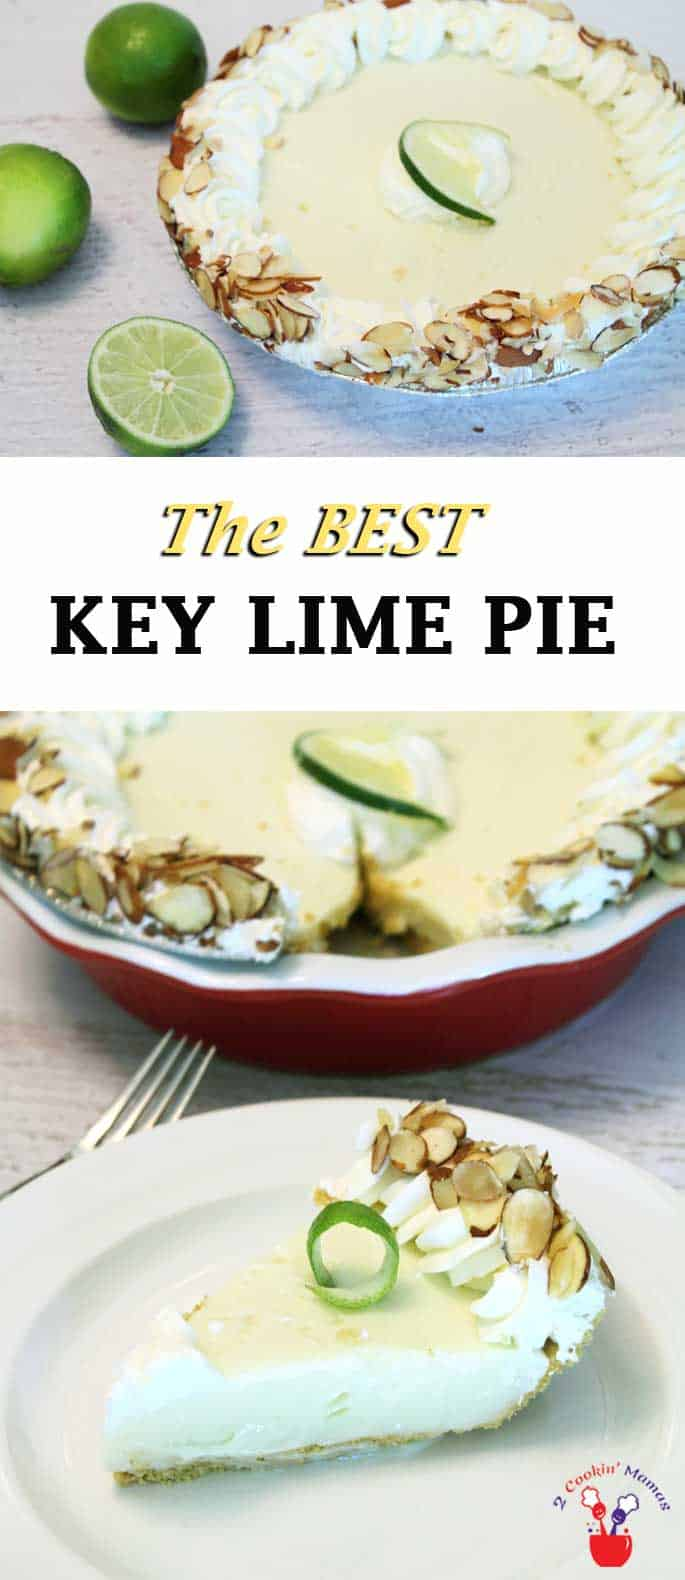 Take a bite out of this slightly tart & creamy key lime pie and you will think you're in the tropics! It's super easy to make & a Florida Keys favorite. #keylimepie #pie #dessert #keylime